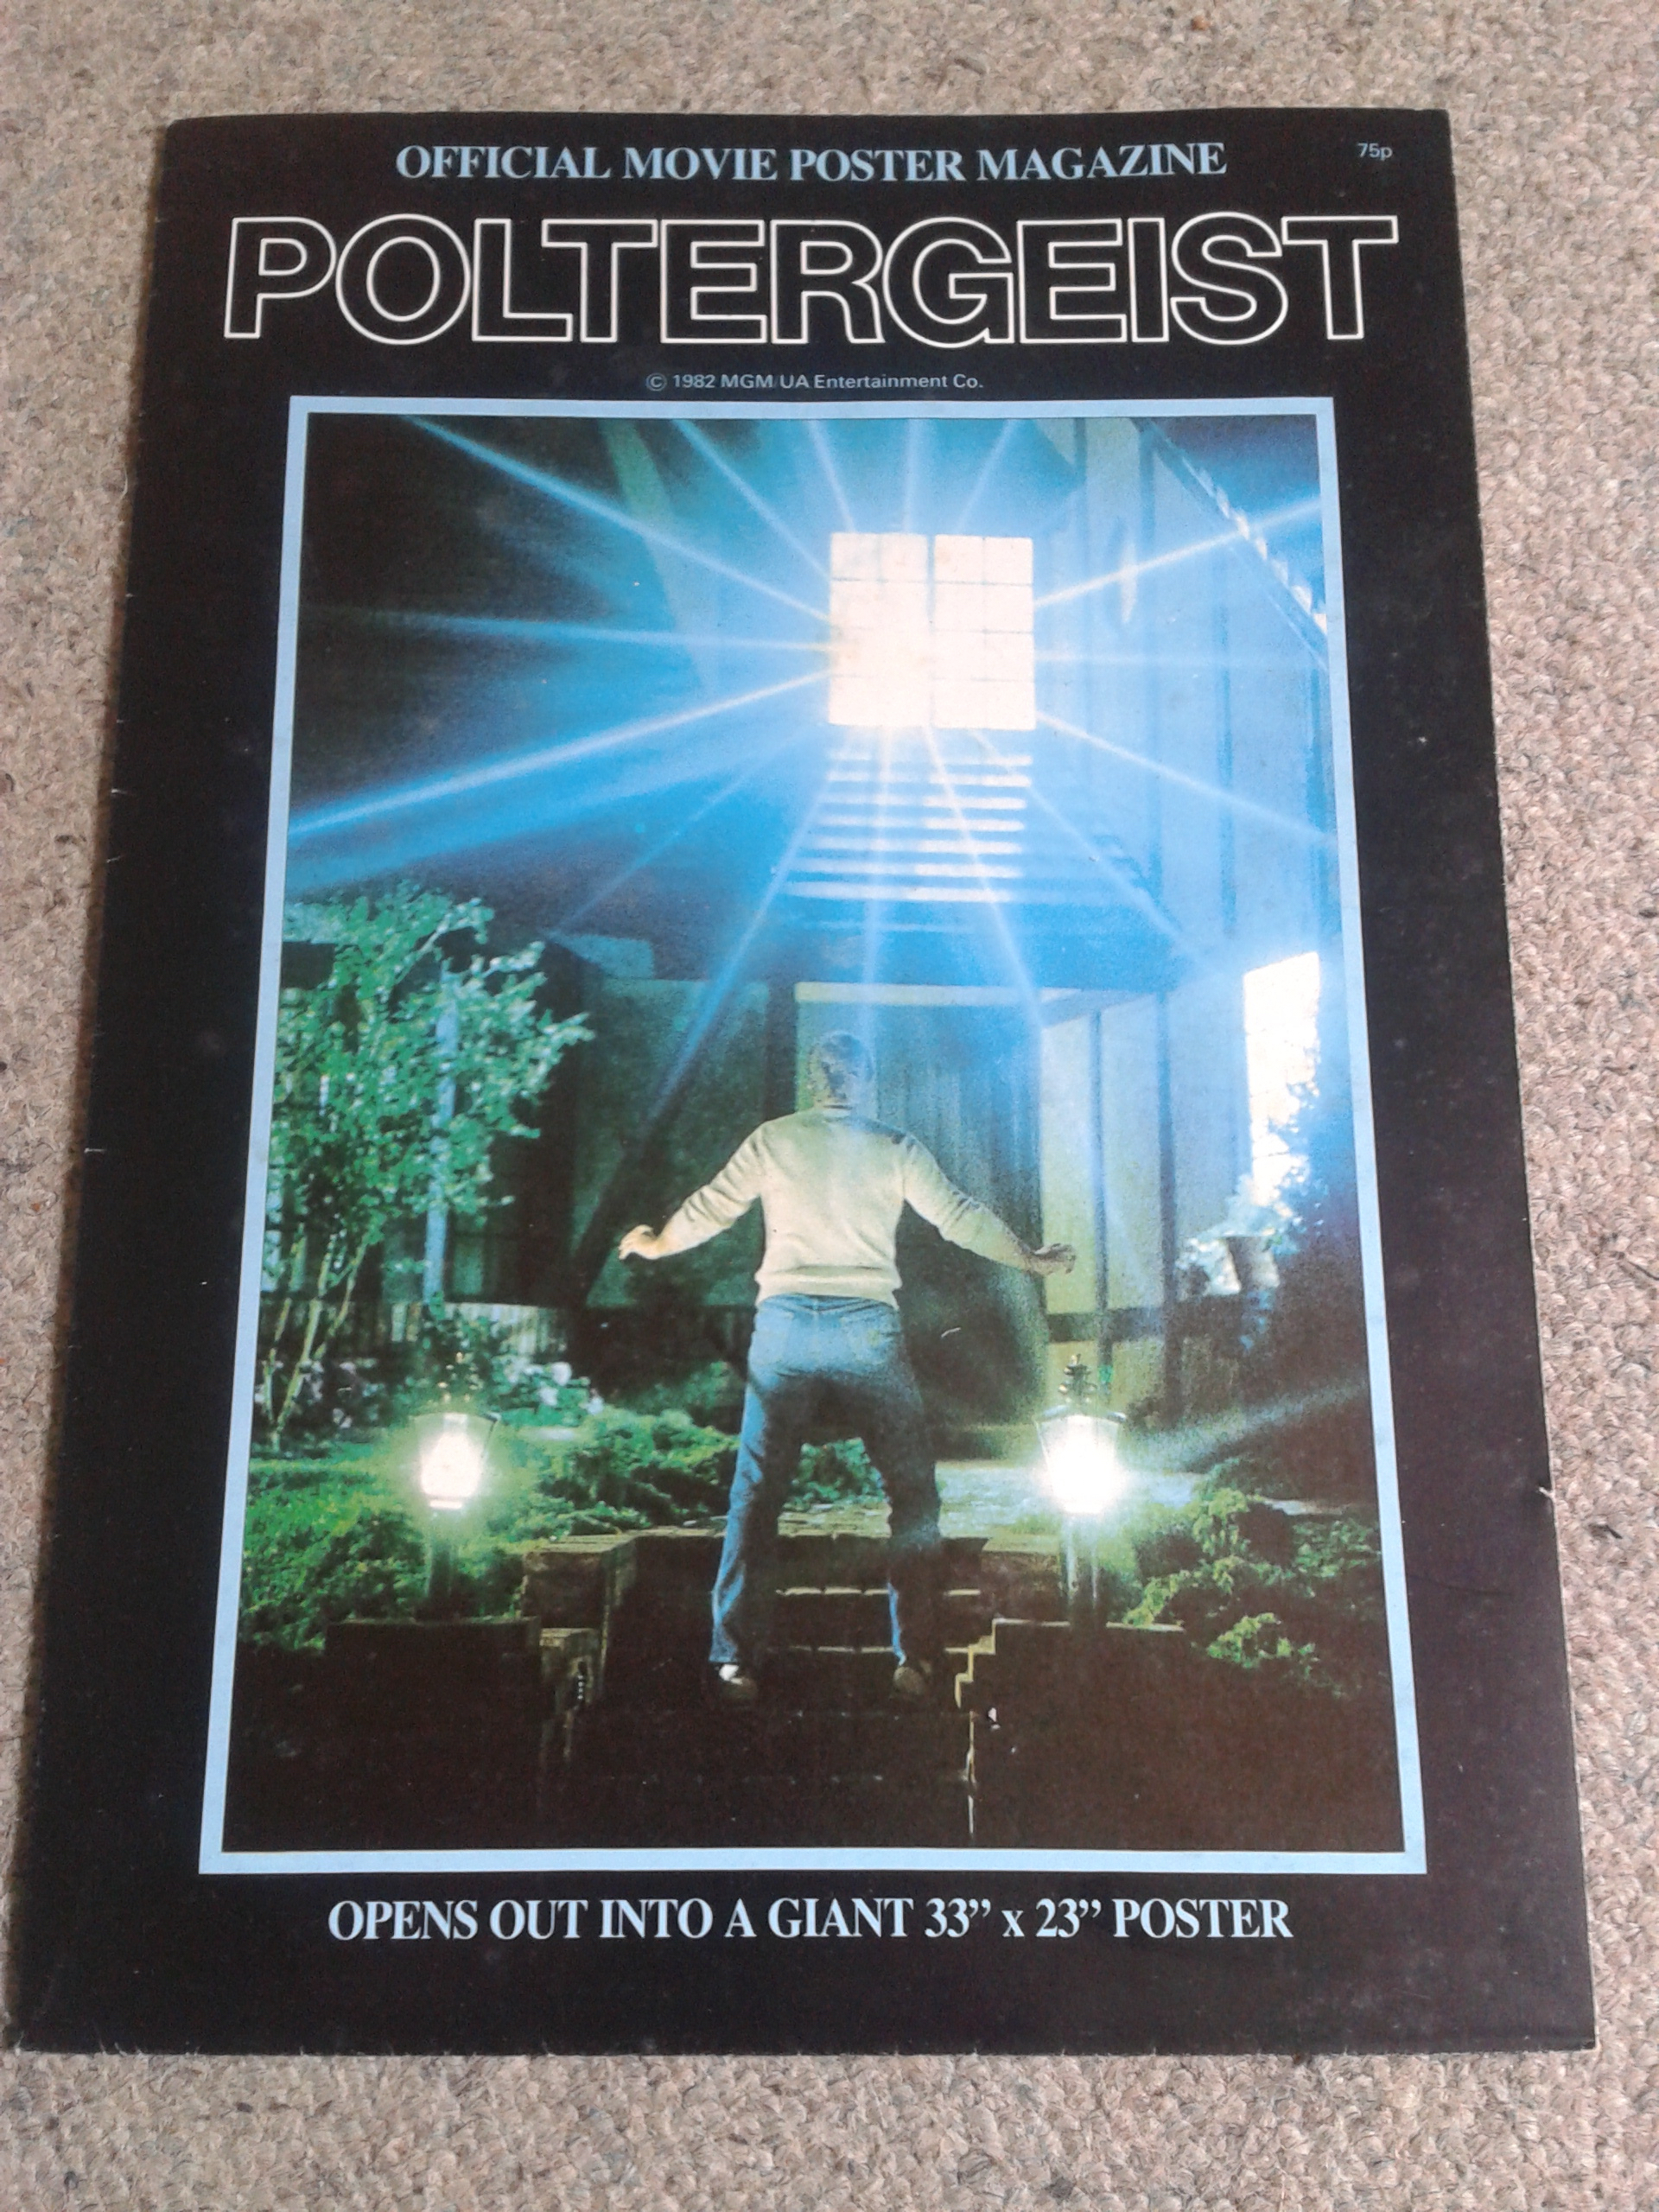 Poltergeist Poster Magazine Front Cover